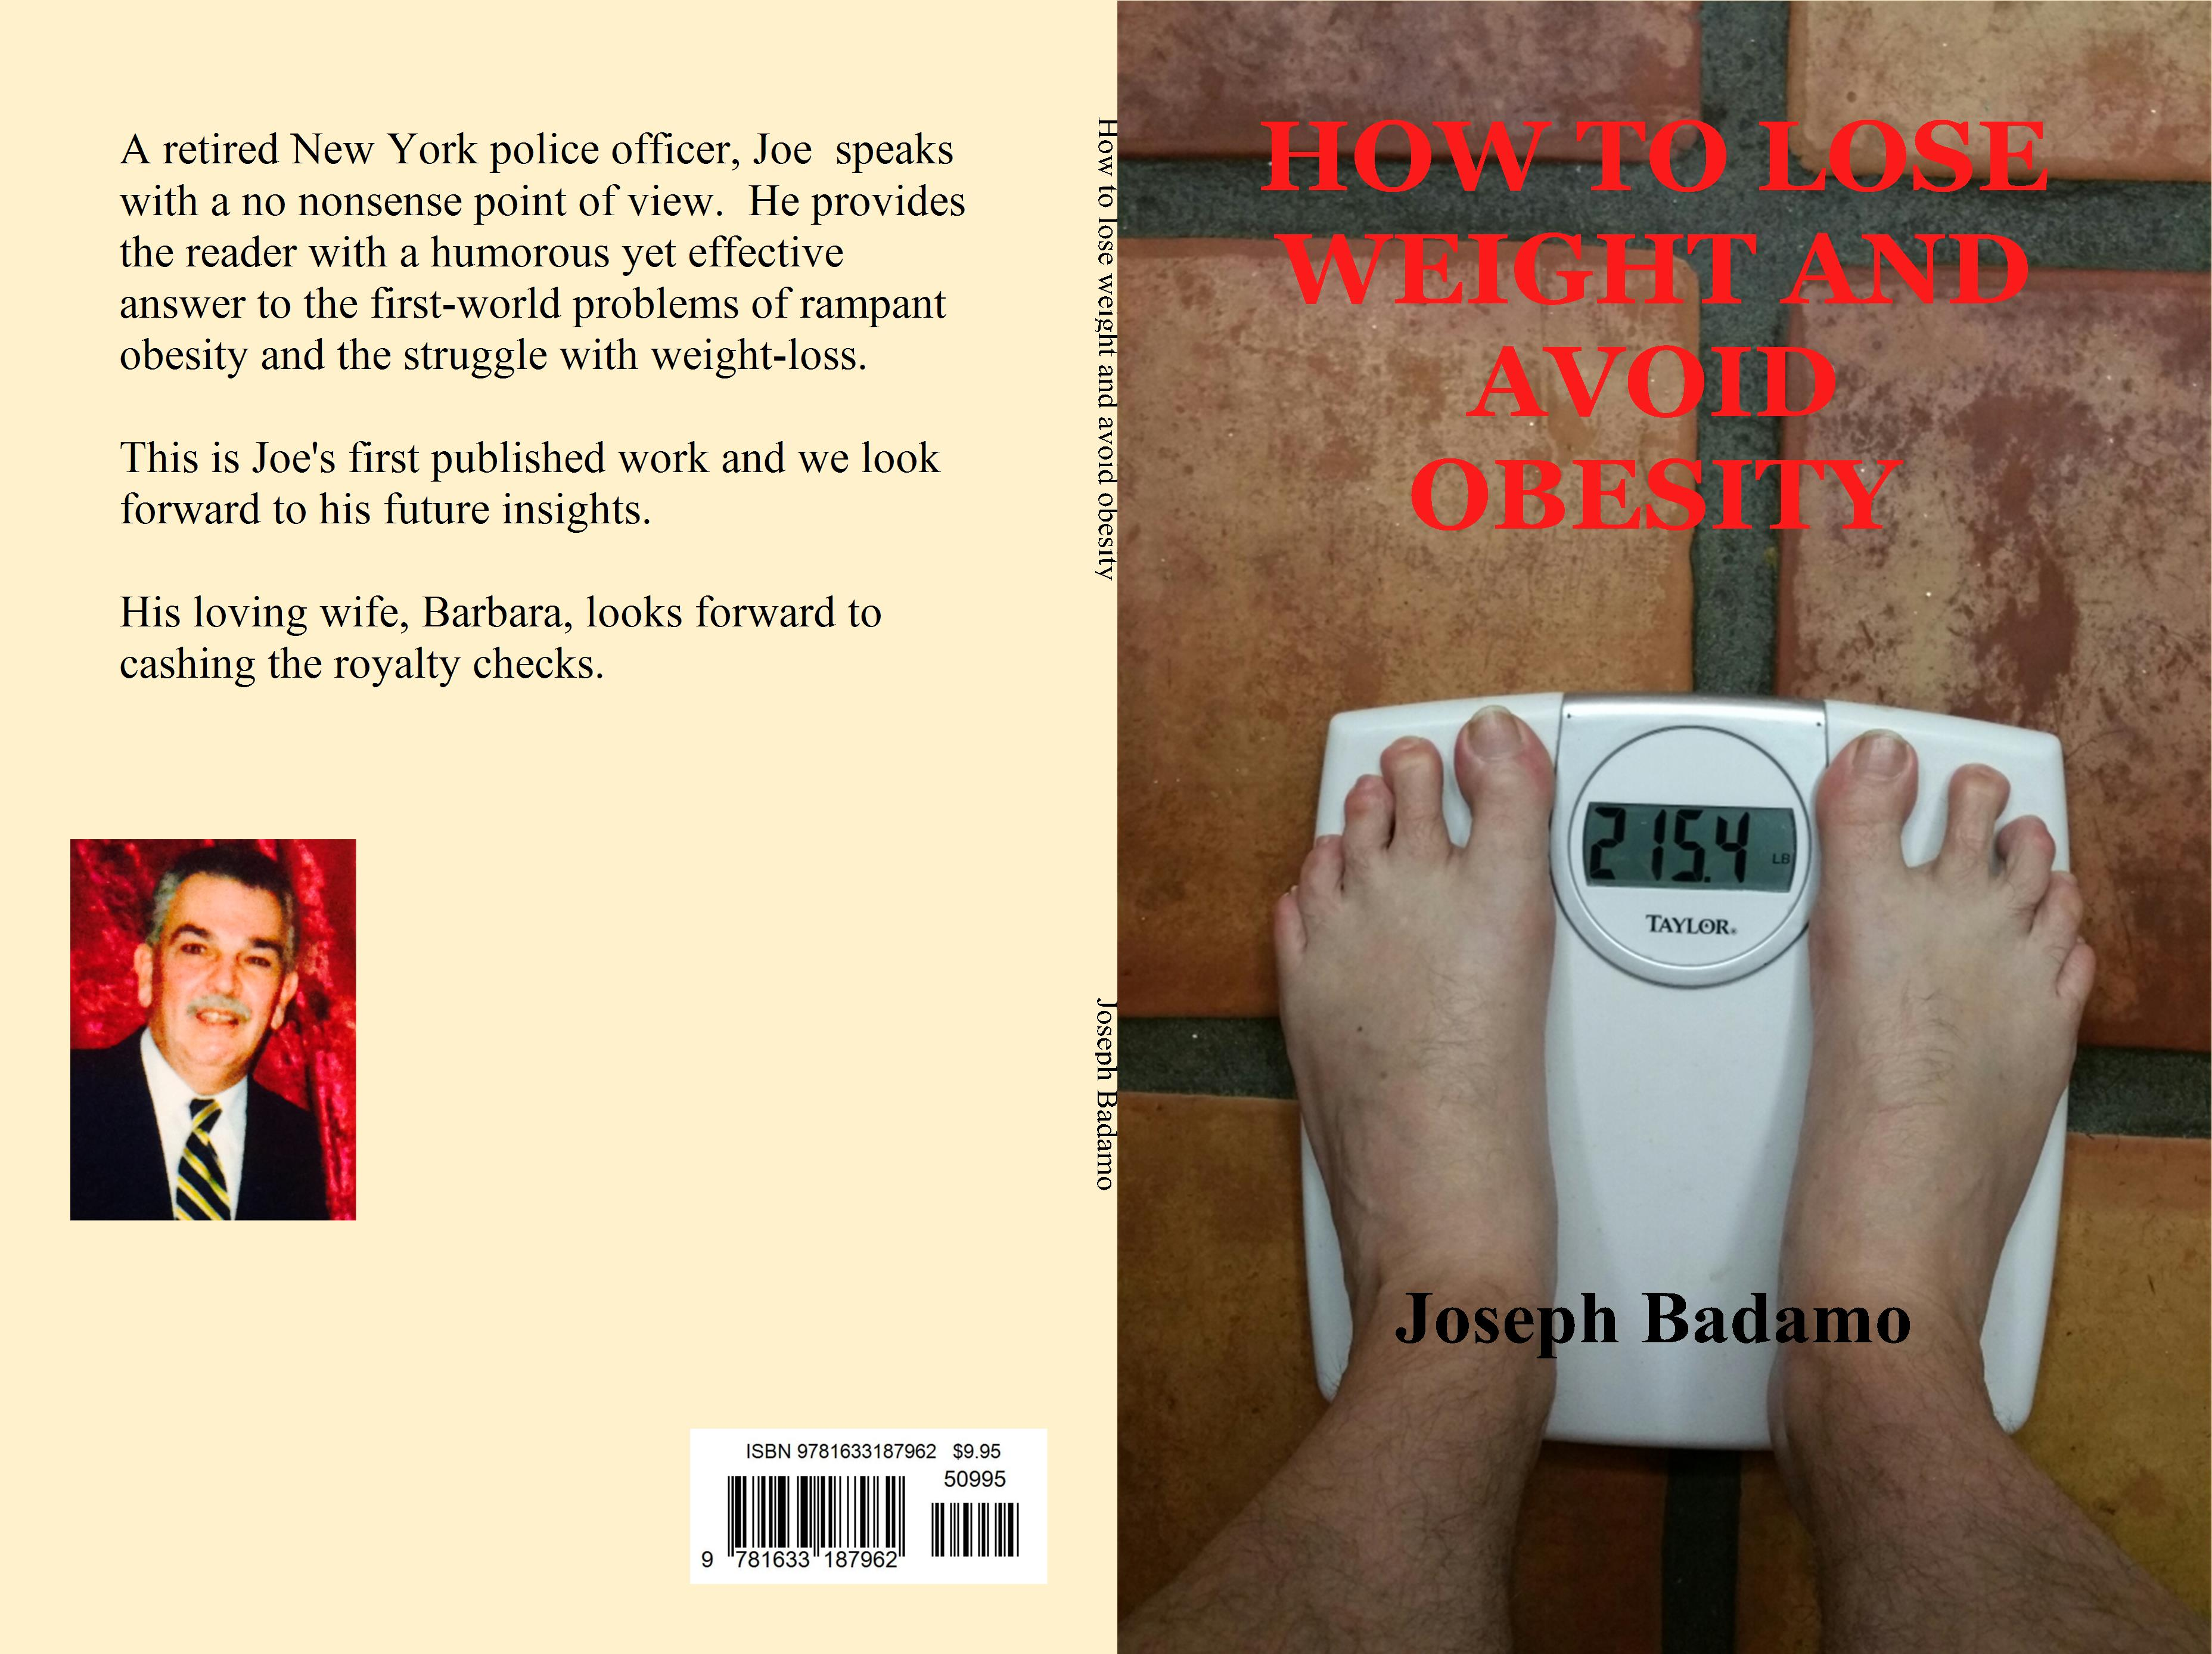 HOW TO LOSE WEIGHT AND AVOID OBESITY cover image